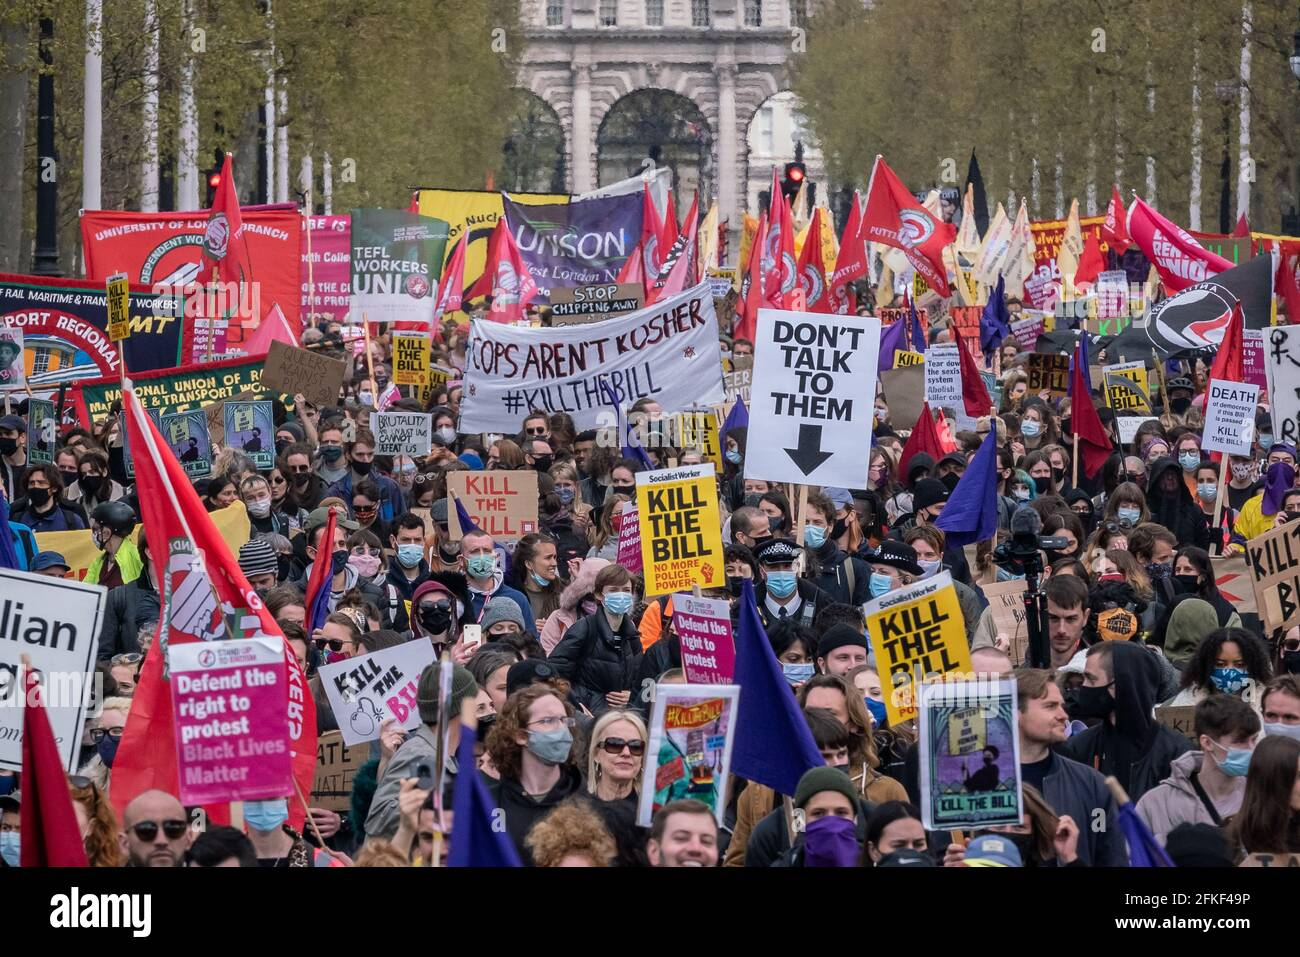 London, UK. 1st May 2021. Kill The Bill protest. Thousands march against a newly proposed police, crime, sentencing and courts bill on May Day (or Labour Day). Numerous social movements have united to protest against the bill, which they say would place significant curbs on freedom of speech and assembly, by giving police powers to curb protests, among other measures. Credit: Guy Corbishley/Alamy Live News Stock Photo